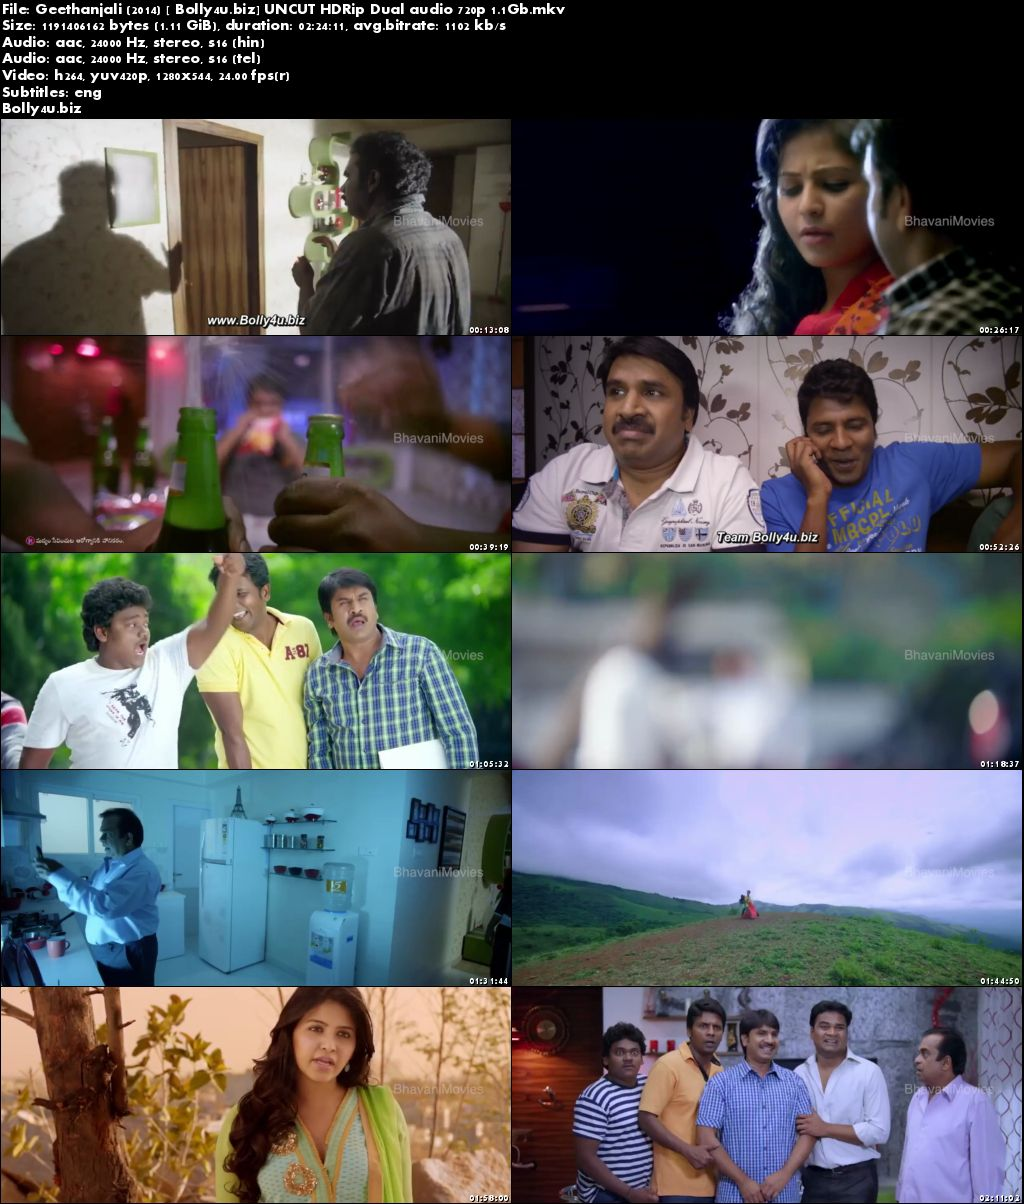 Geethanjali 2014 HDRip UNCUT 1GB Hindi Dual Audio 720p Download